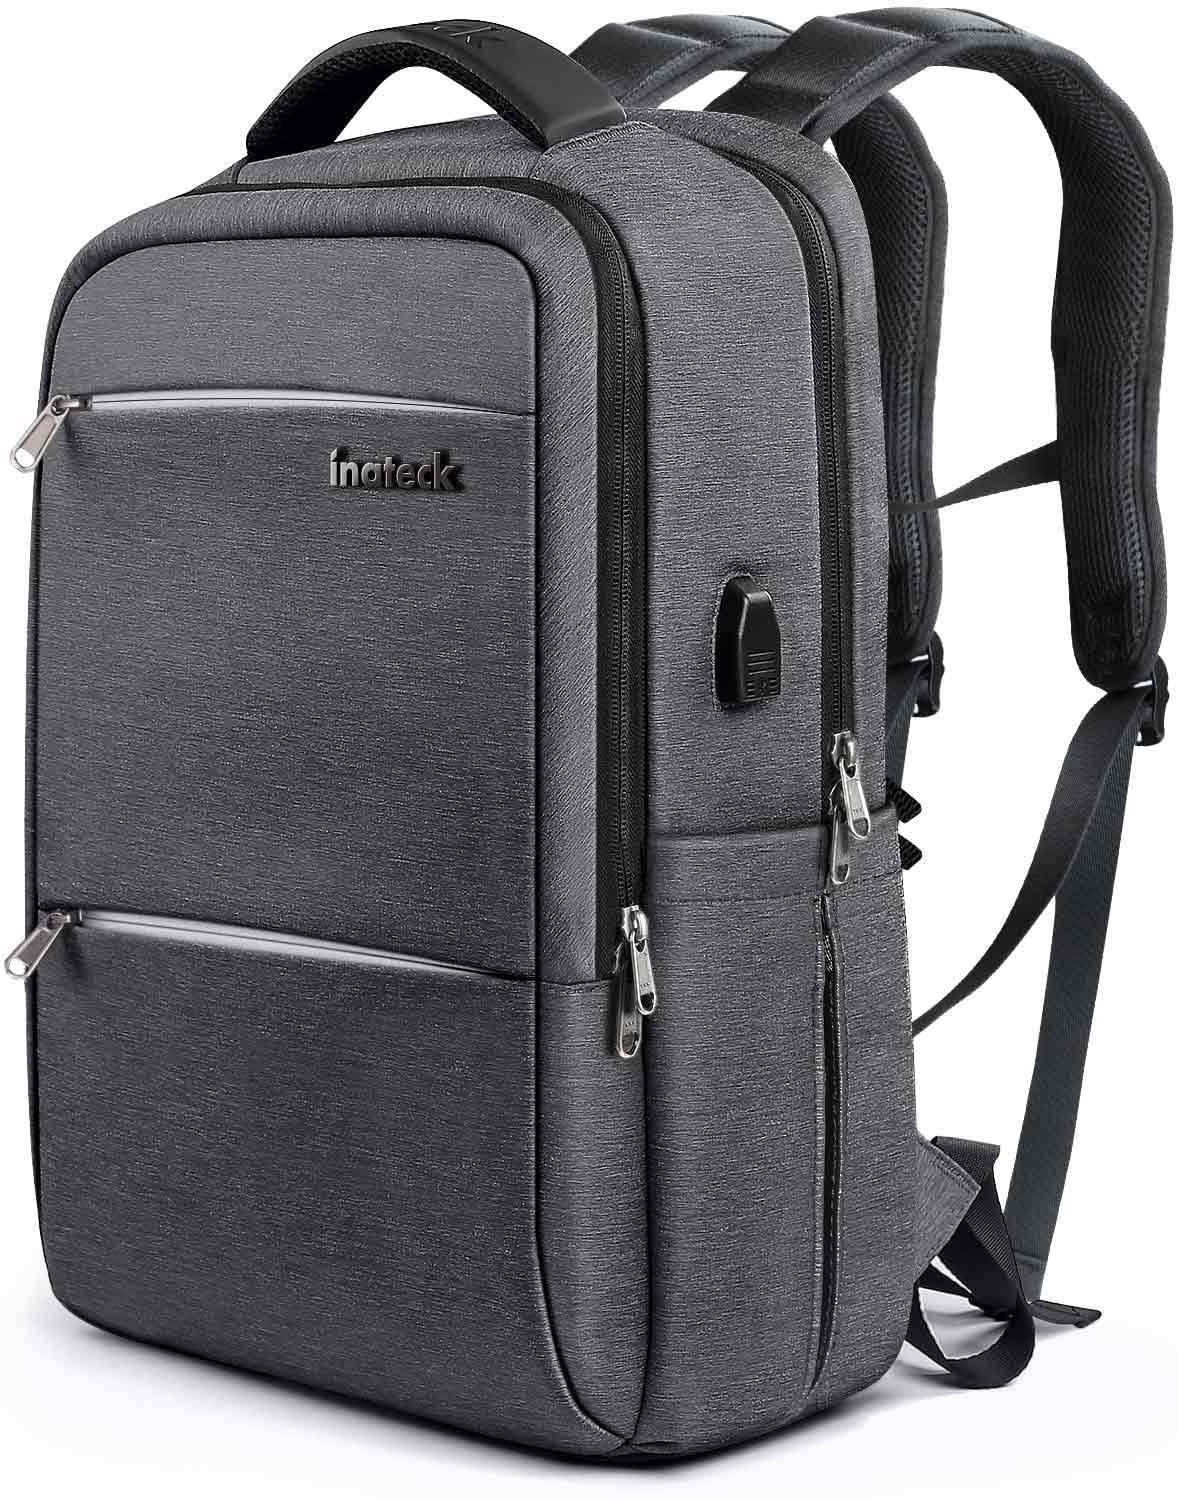 Inateck School Laptop Backpack Fits 15.6 Inch Laptops, College Business Travel Bag Rucksack with Waterproof Rain Cover/USB Charging Port, Dark Gray